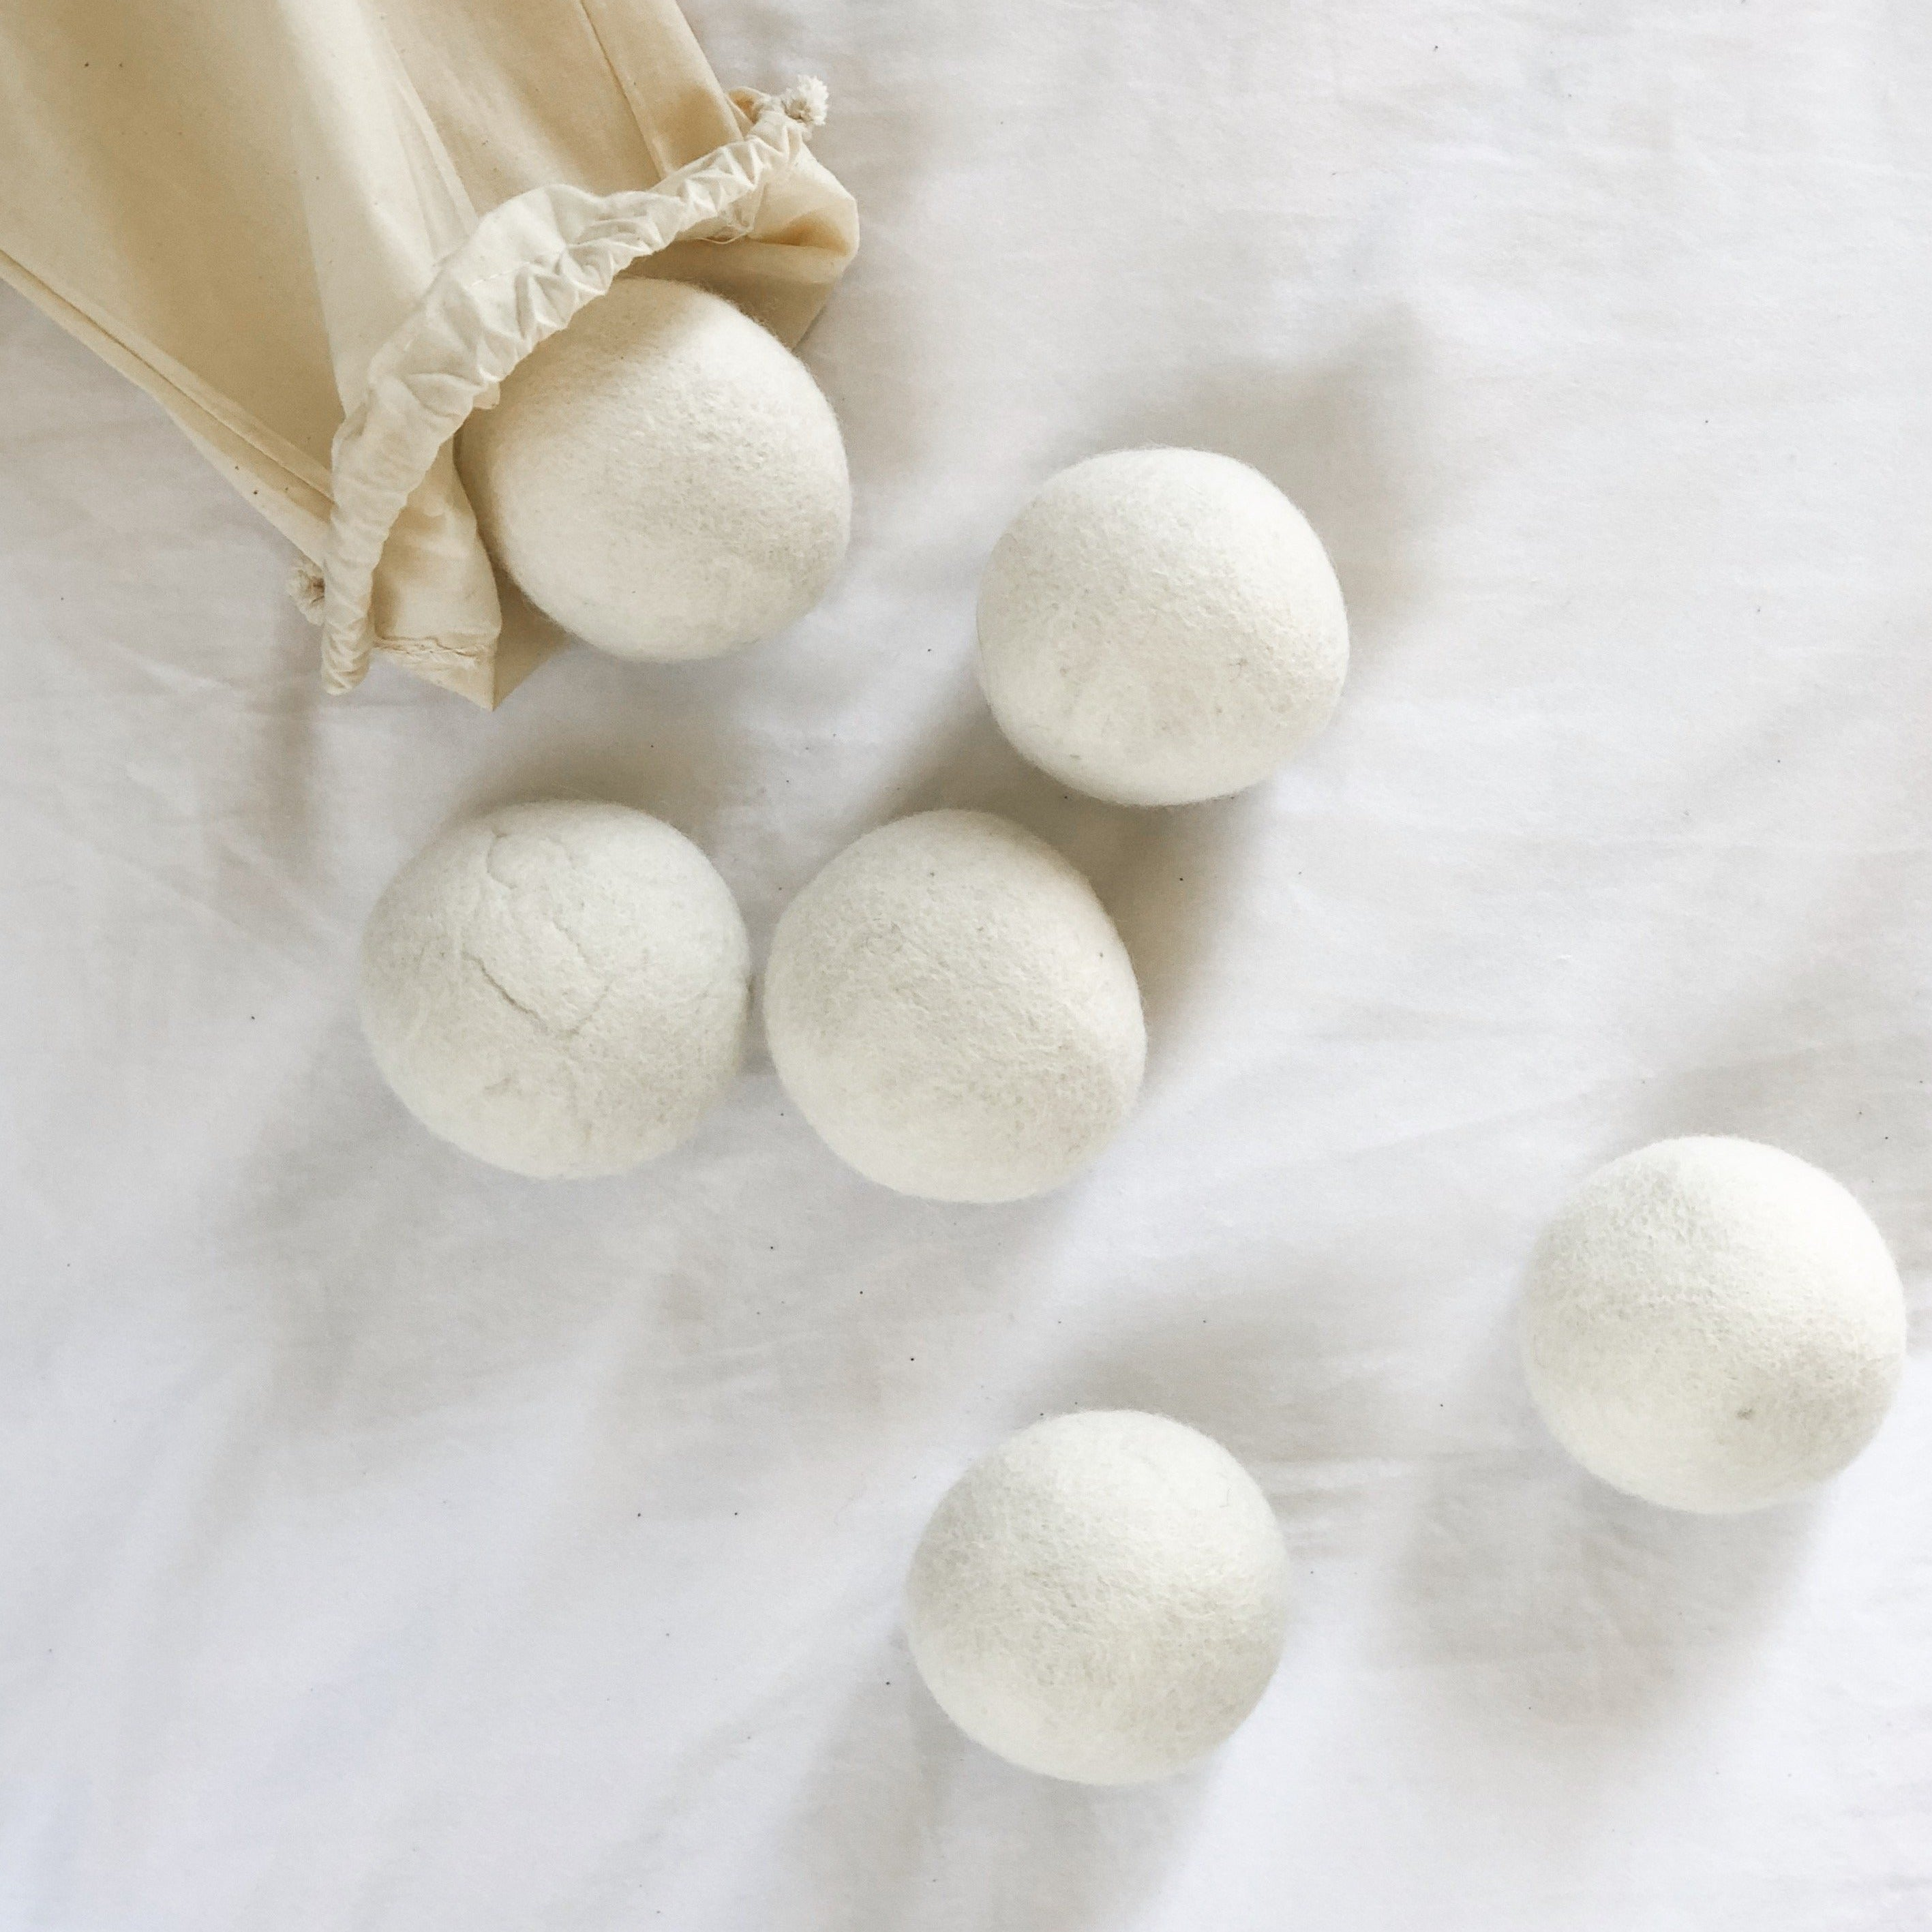 Wool Dryer Balls - Tofino Soap Company ®